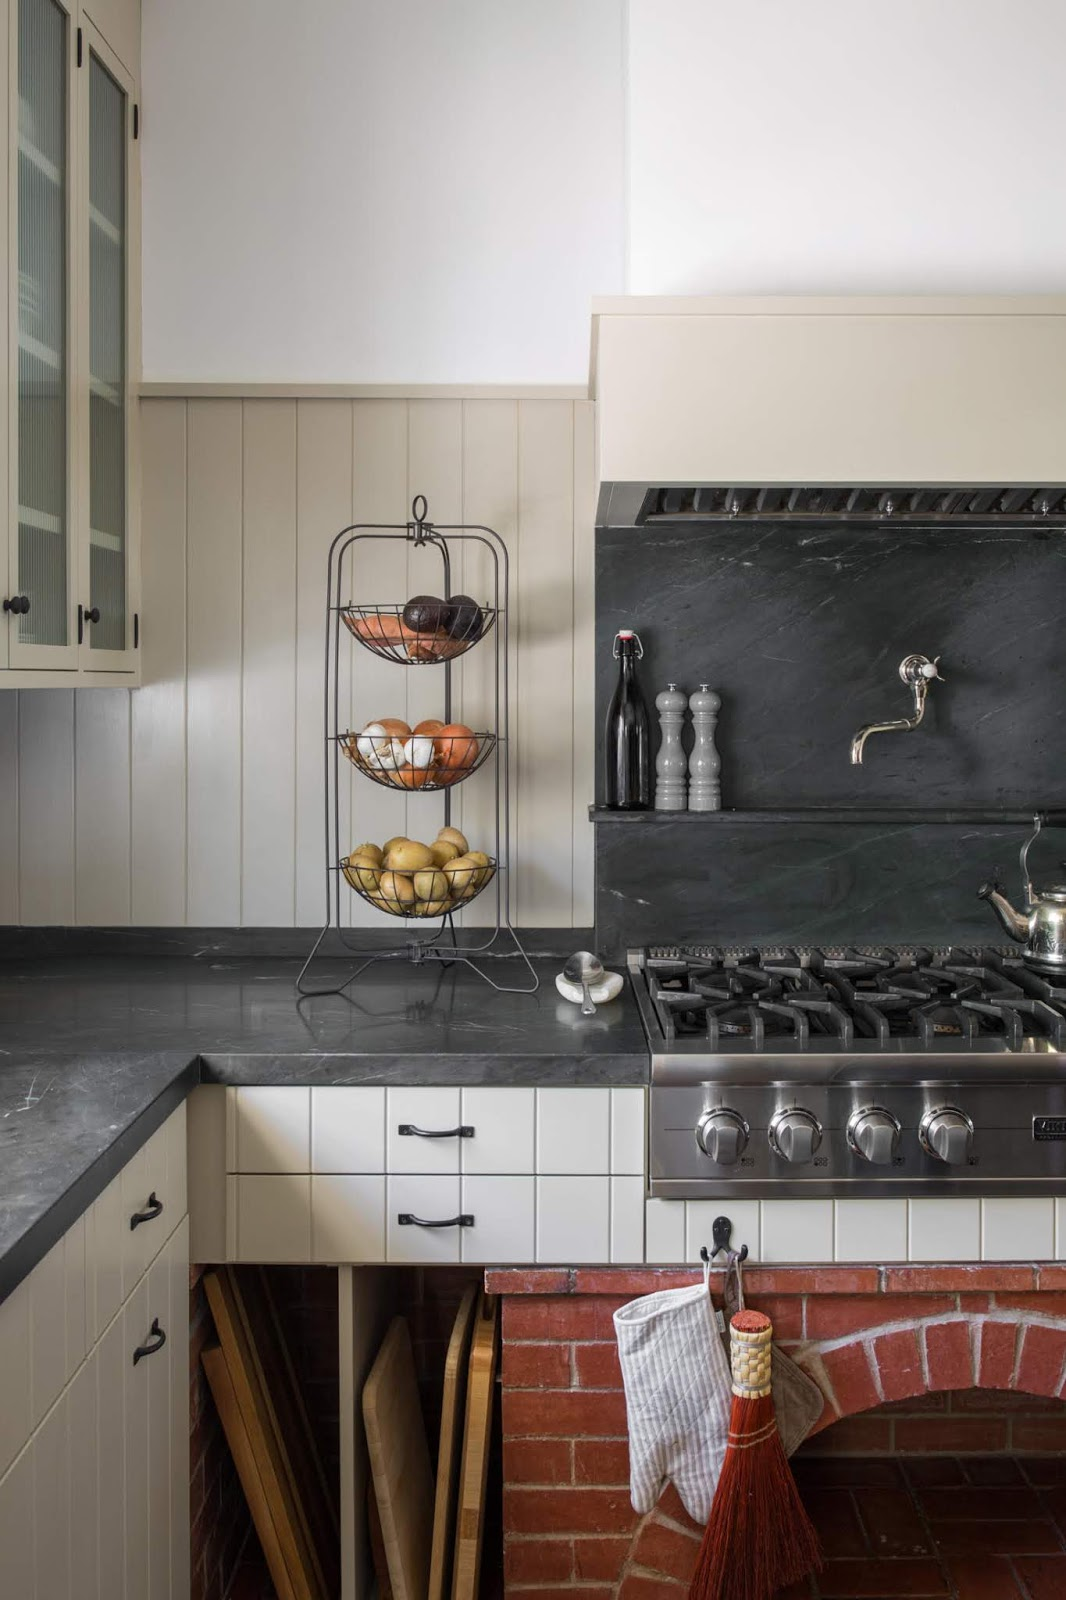 ORC inspiration: marble counters and backplace, vintage cottage feel